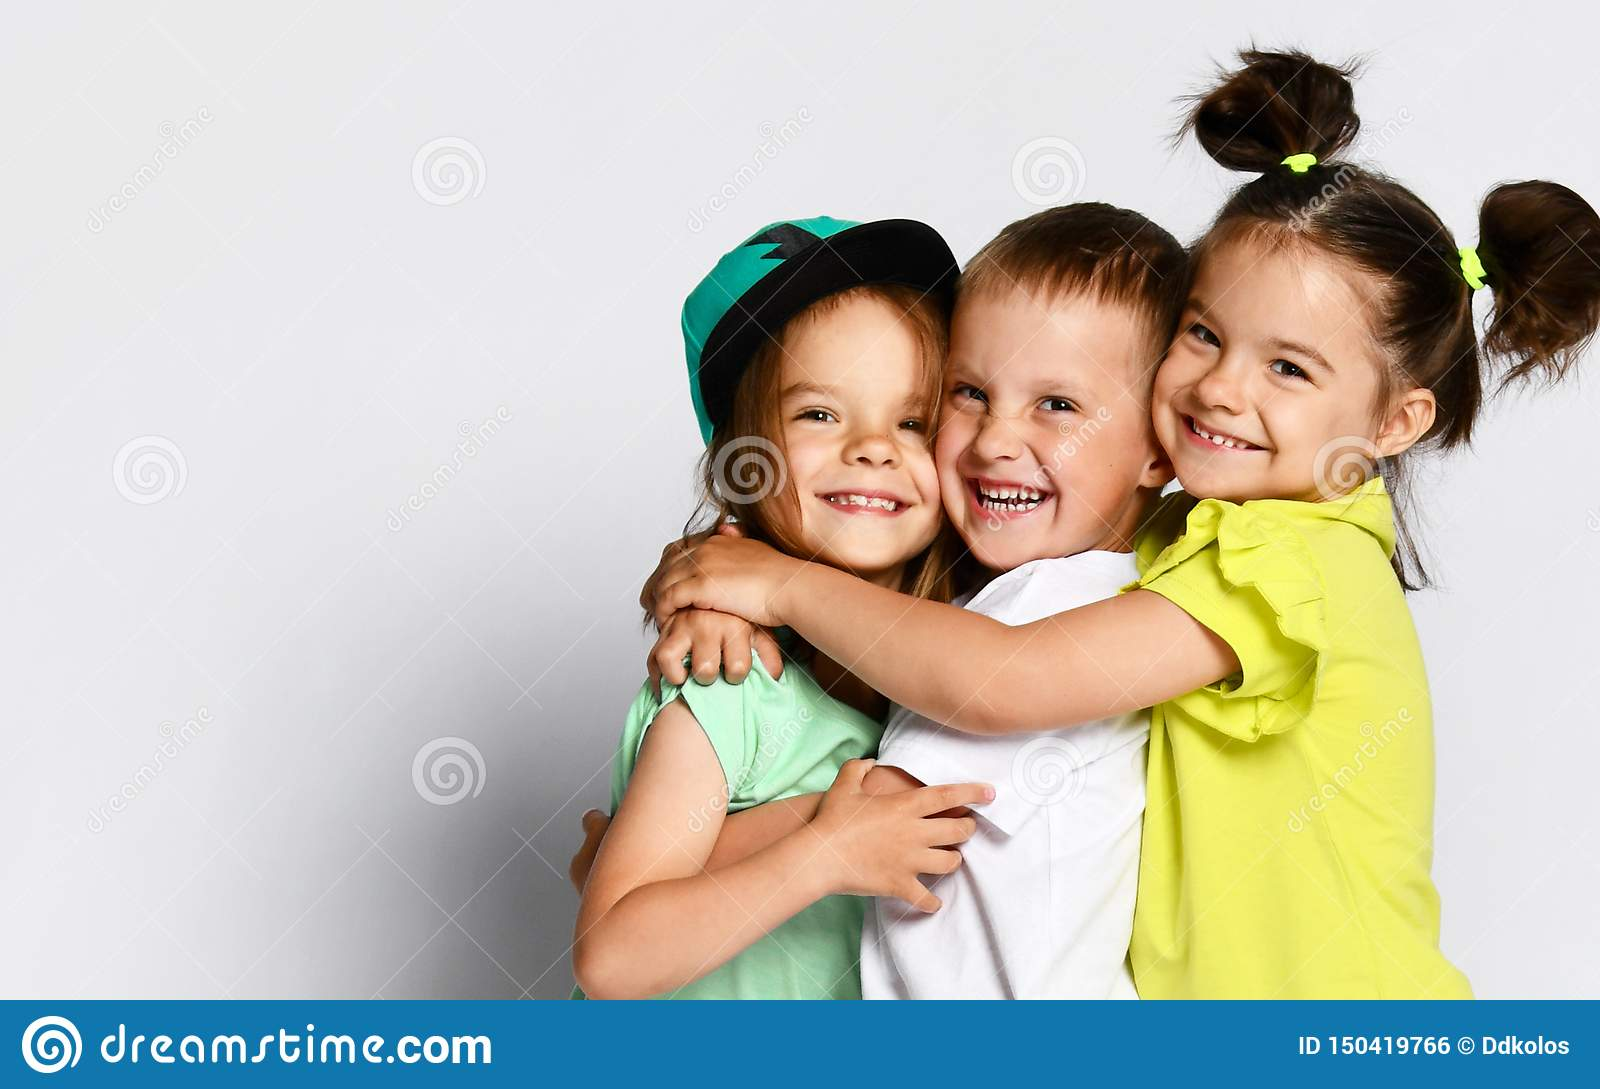 Three Children In Bright Clothes Two Girls And One Boy Triplets